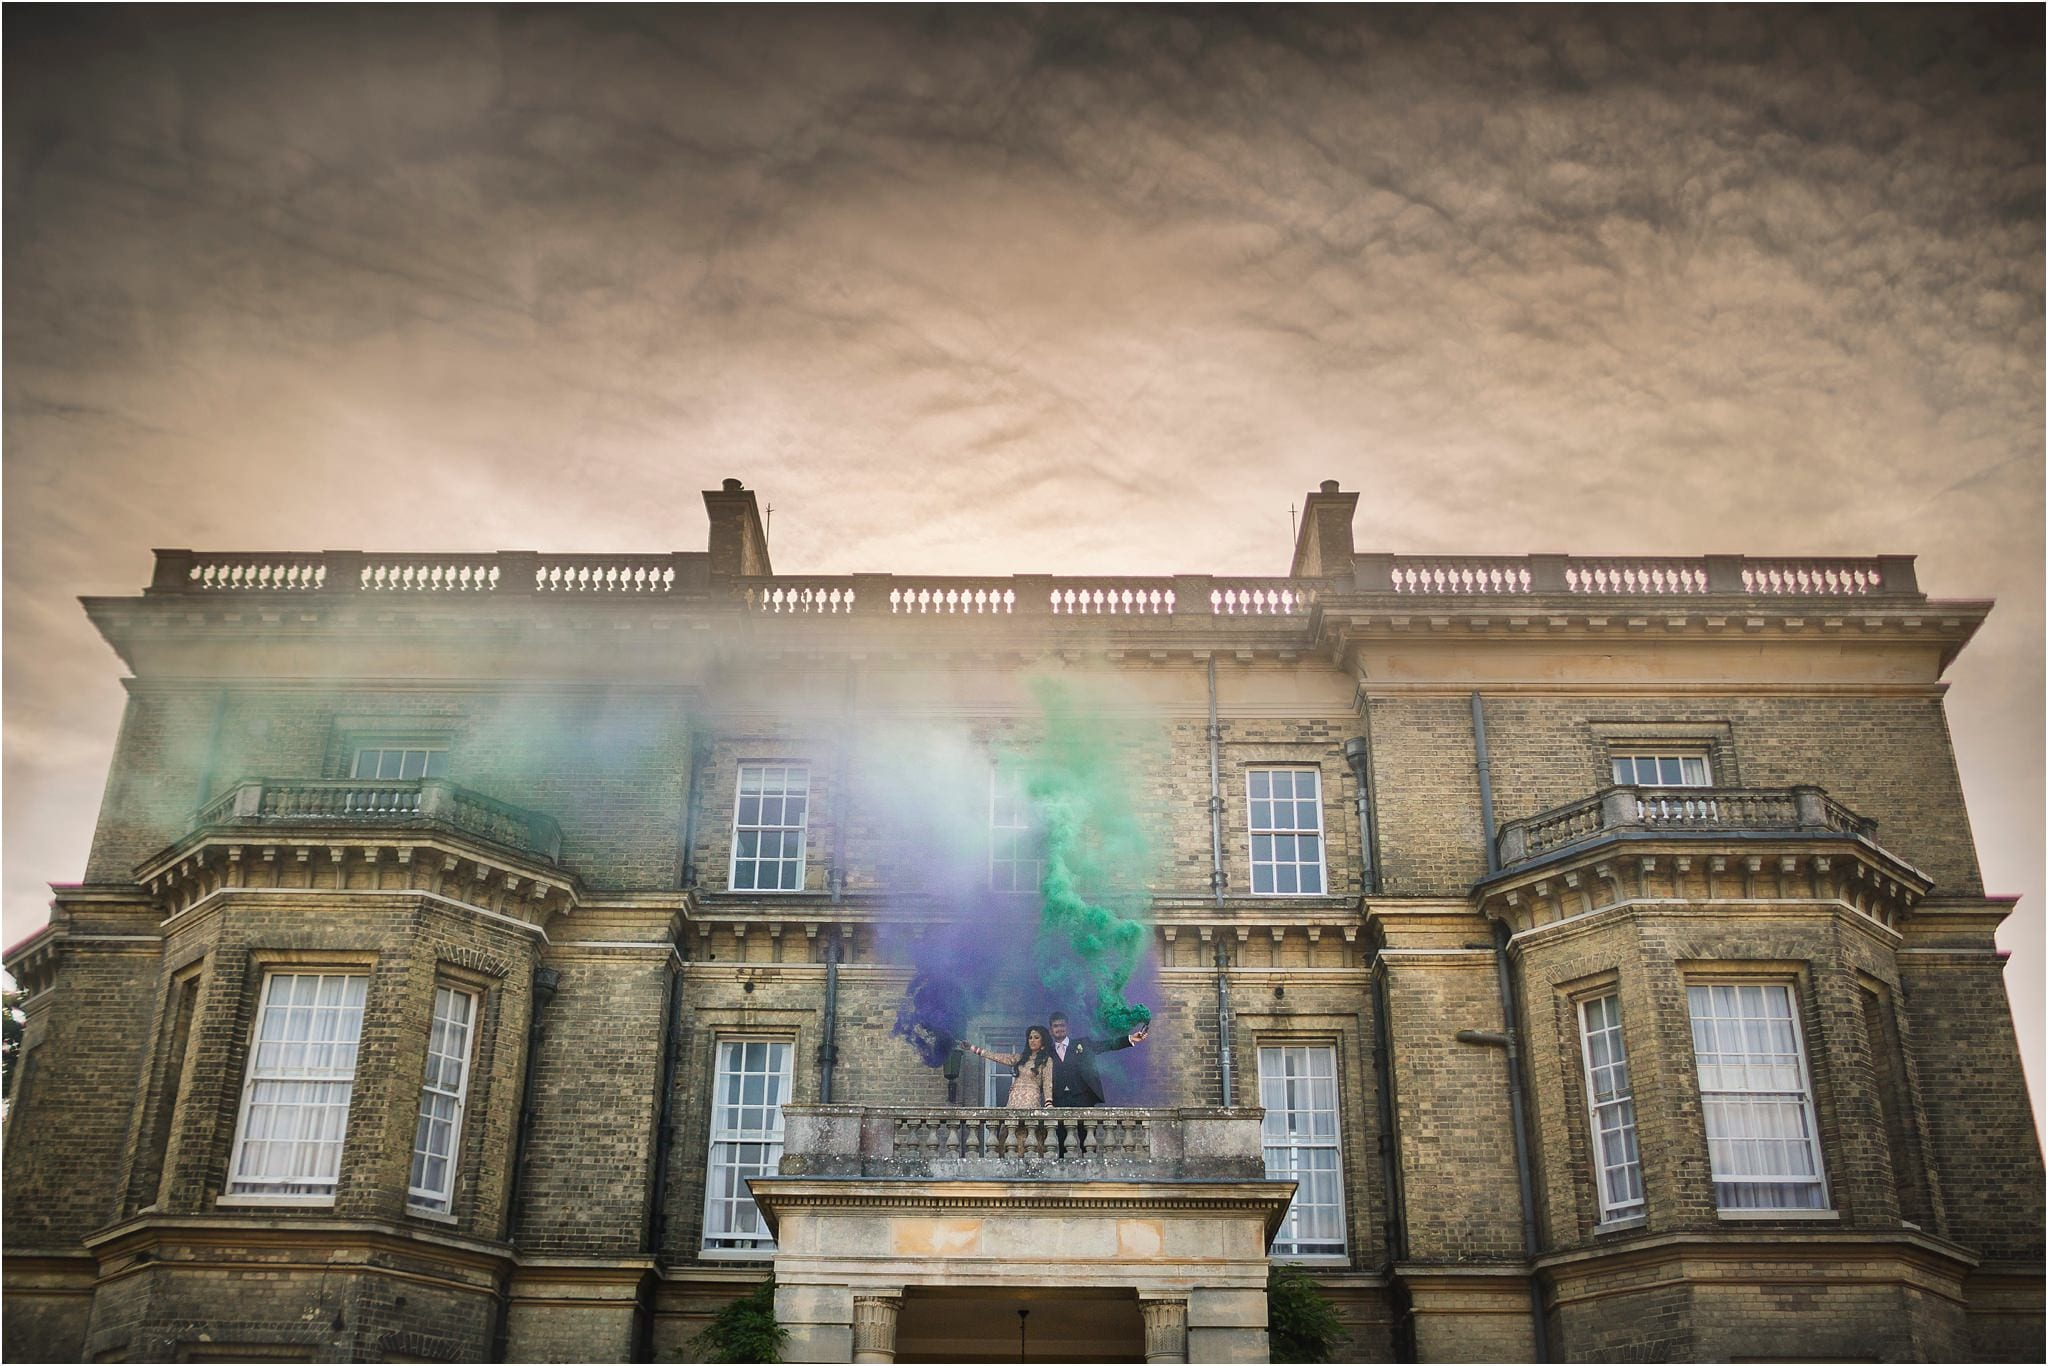 A grand wedding venue, Hedsor House. The sky is moody and there is a couple holding purple and green smoke grenades on a balcony in the middle of the image.